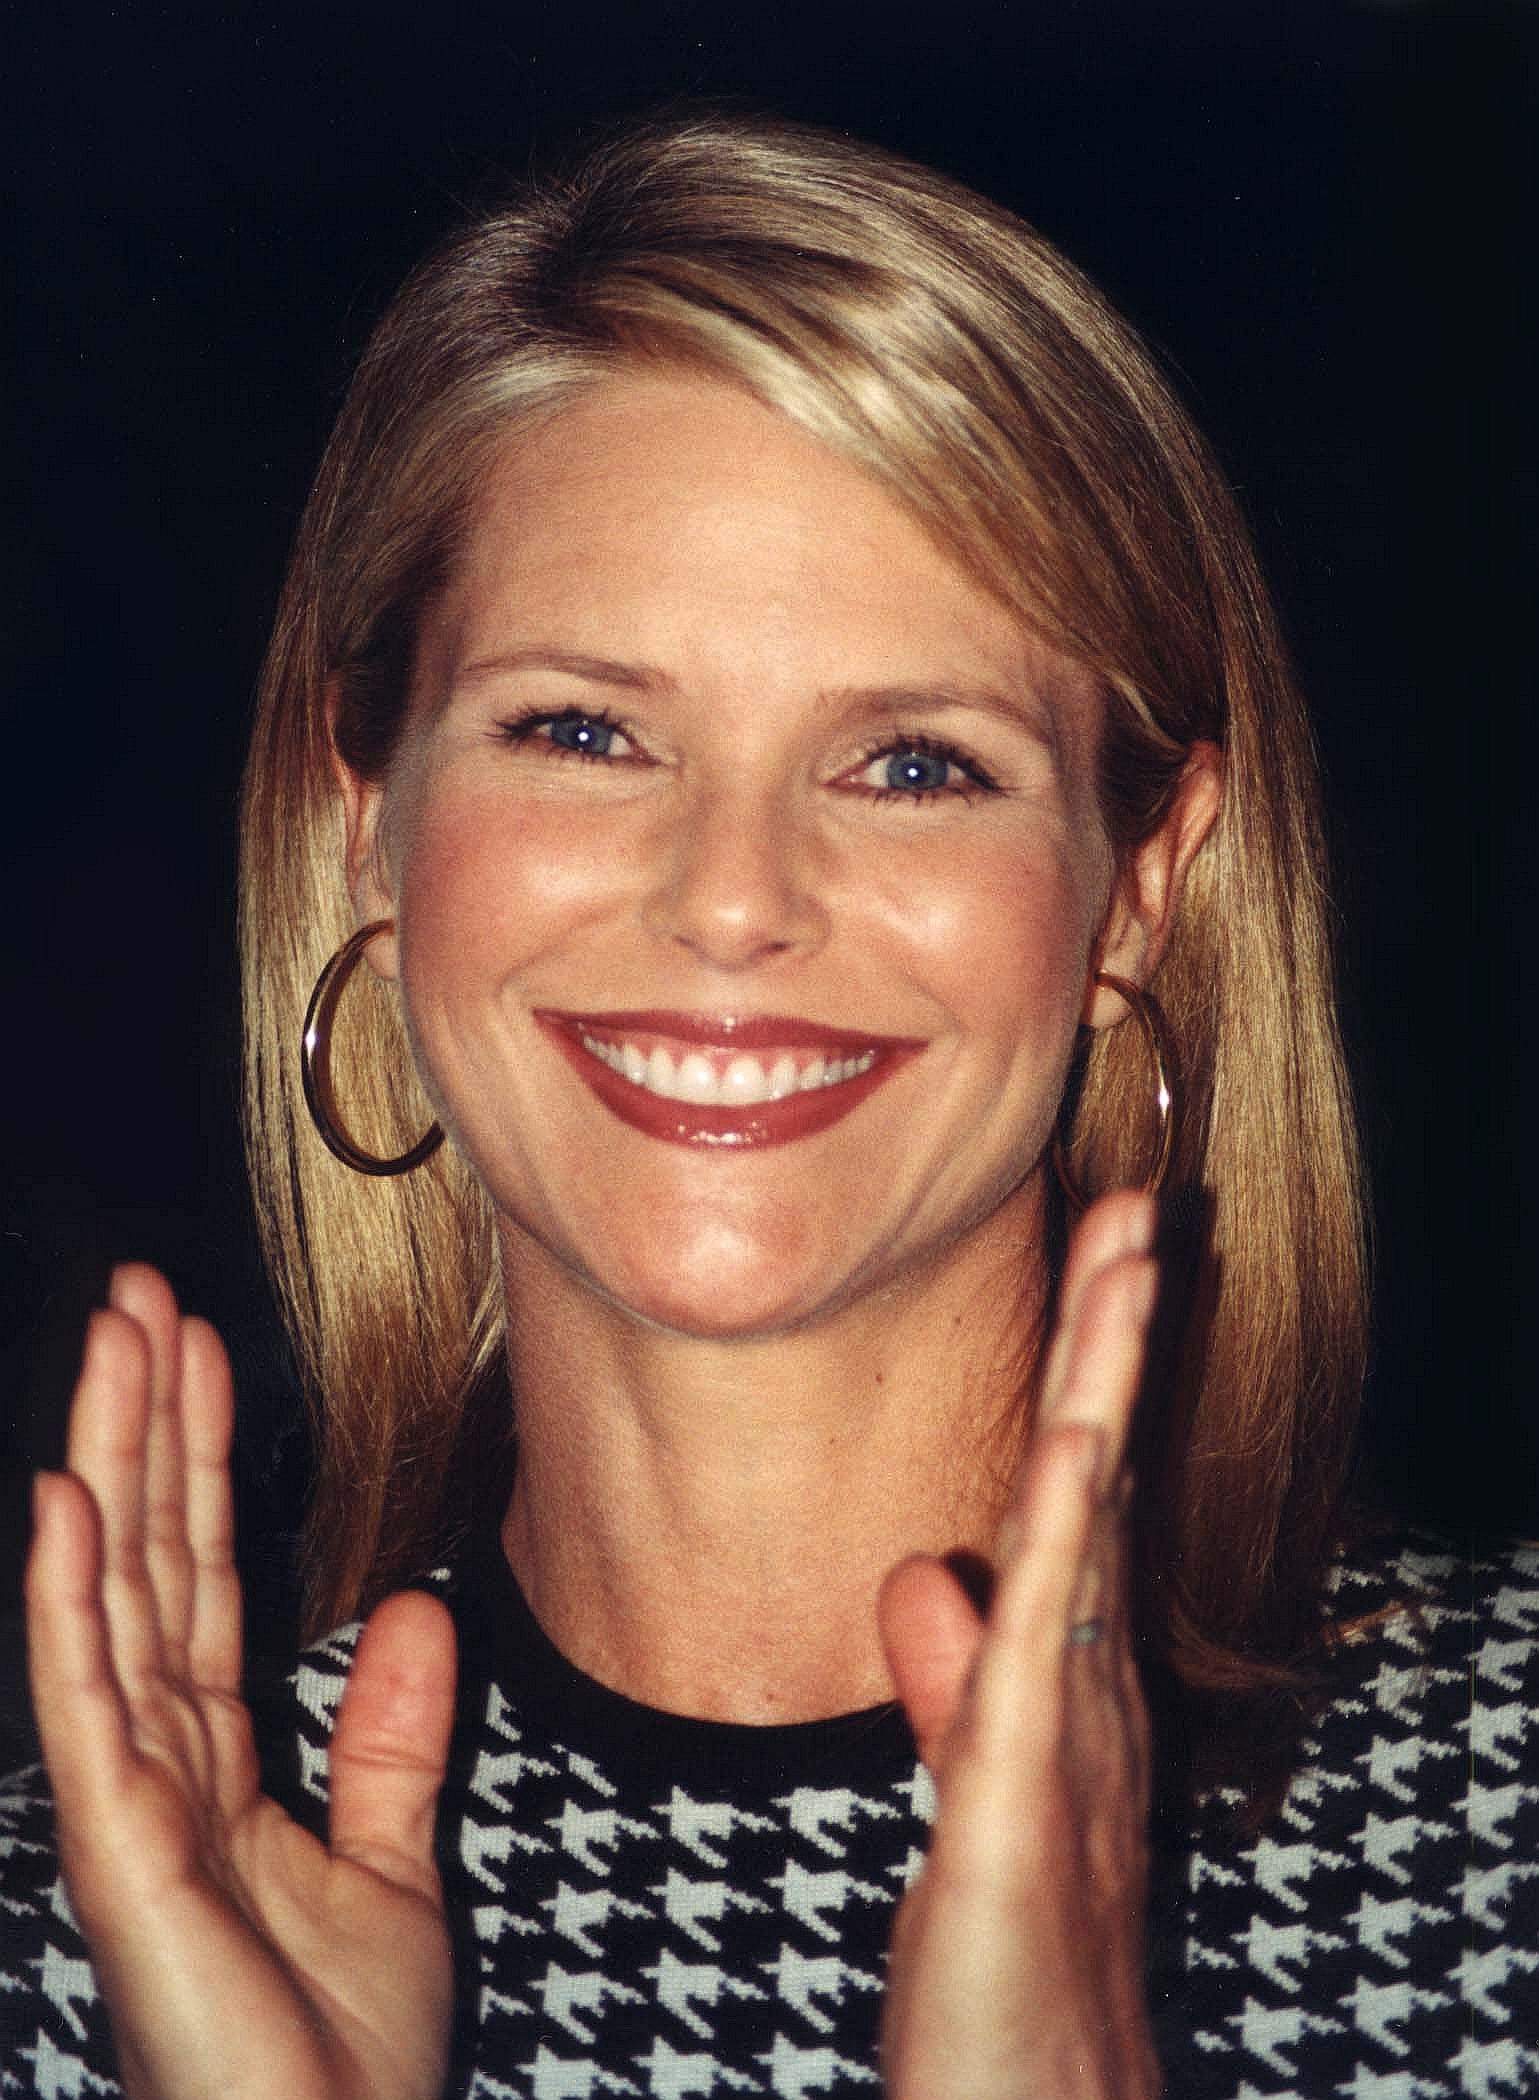 File:Christie Brinkley 1998.jpg - Wikimedia Commons